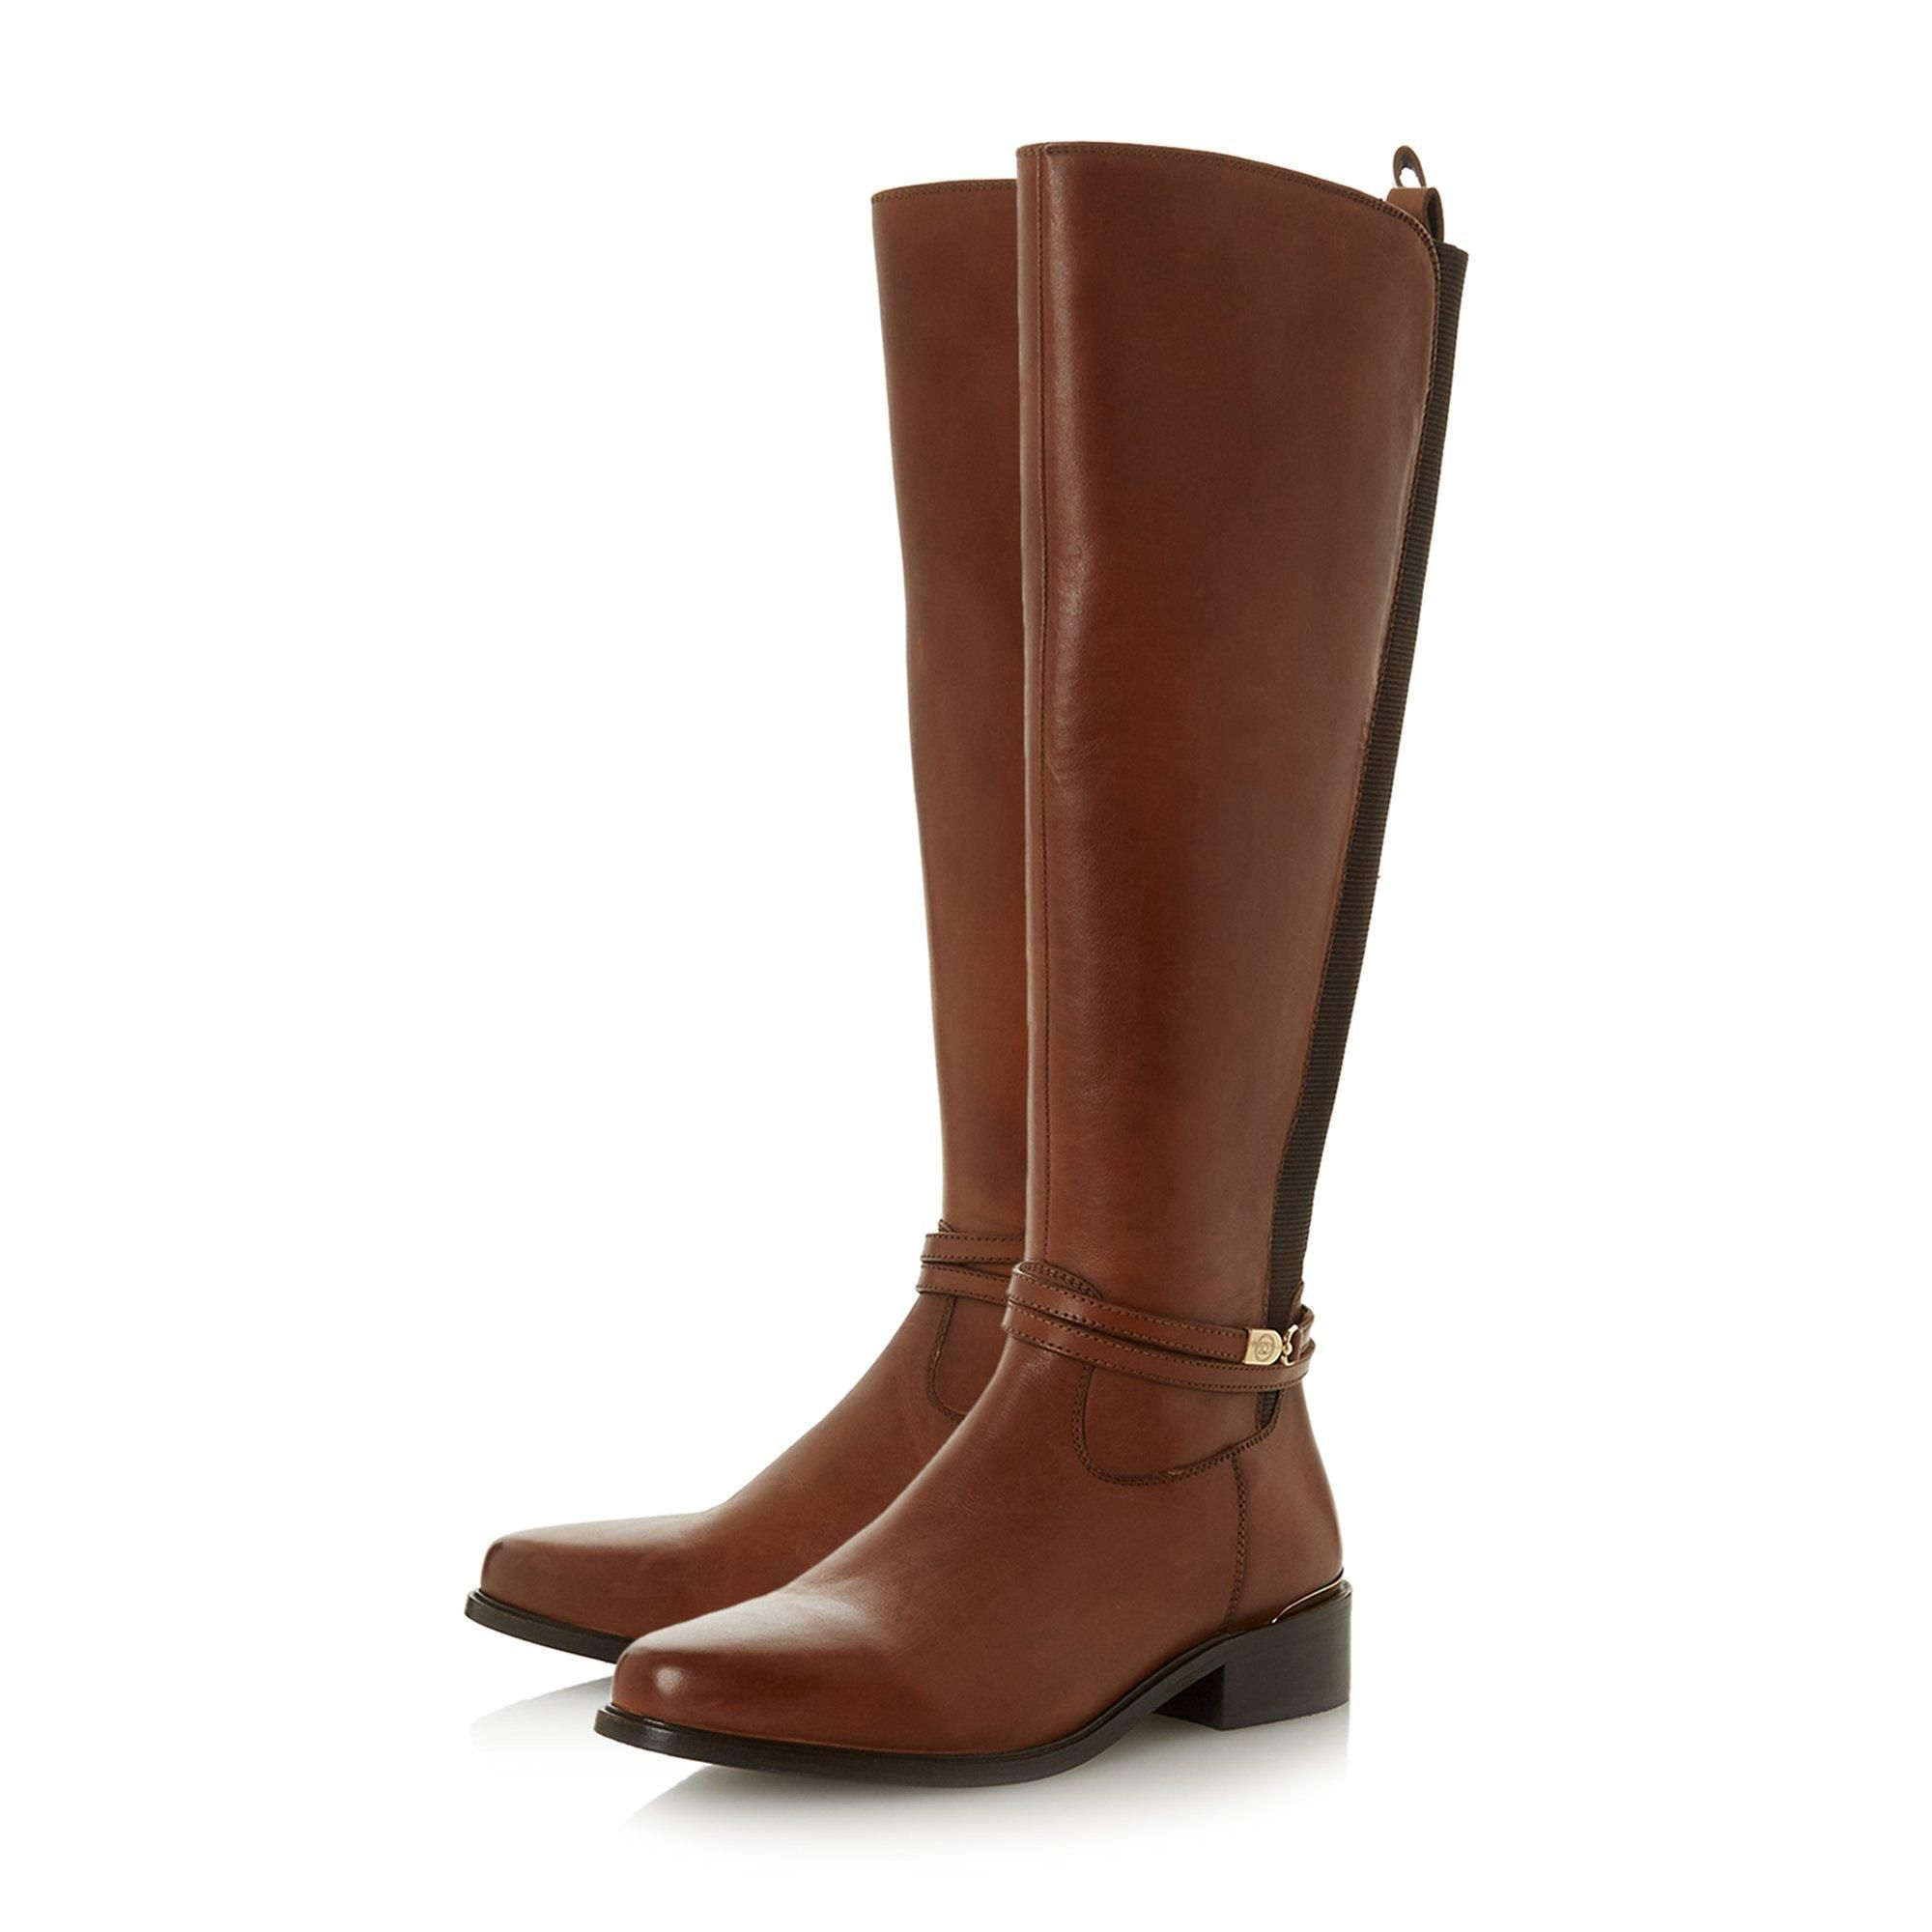 Dune Ladies TRAVISS Knee High Boots